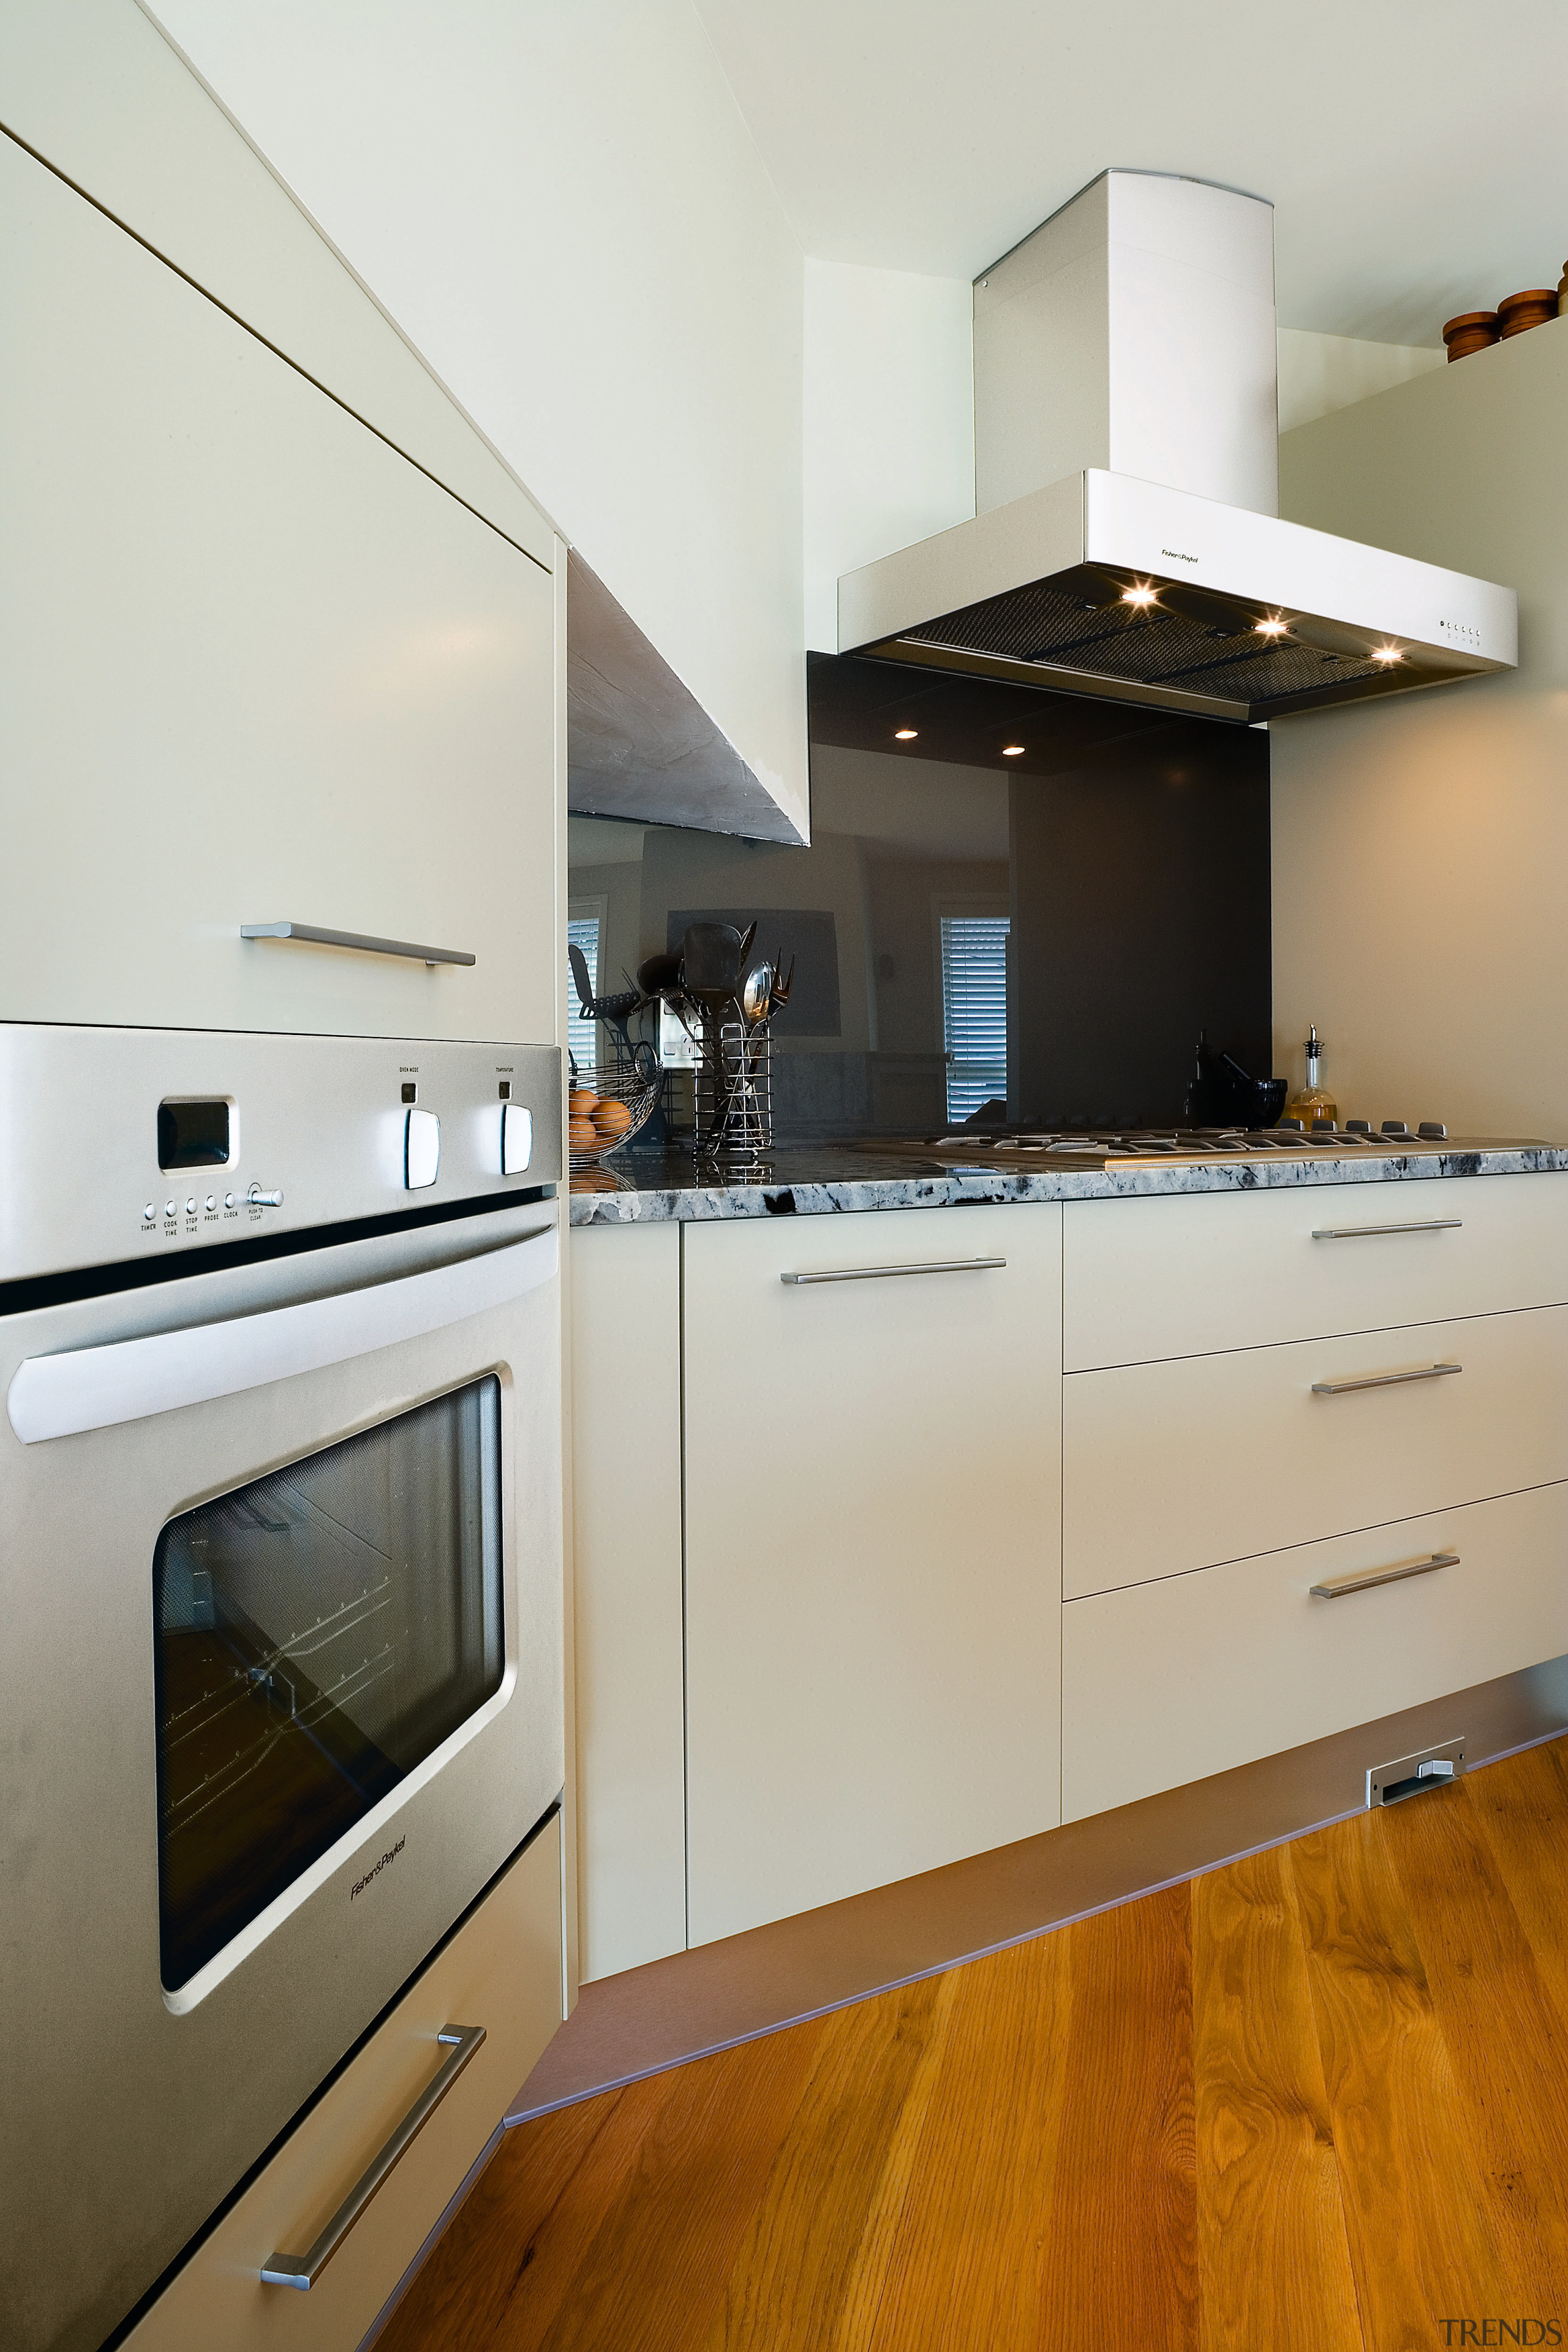 A view of this kitchen featuring the latest apartment, architecture, cabinetry, countertop, cuisine classique, floor, hardwood, home, home appliance, interior design, kitchen, kitchen appliance, kitchen stove, major appliance, room, wood, wood flooring, white